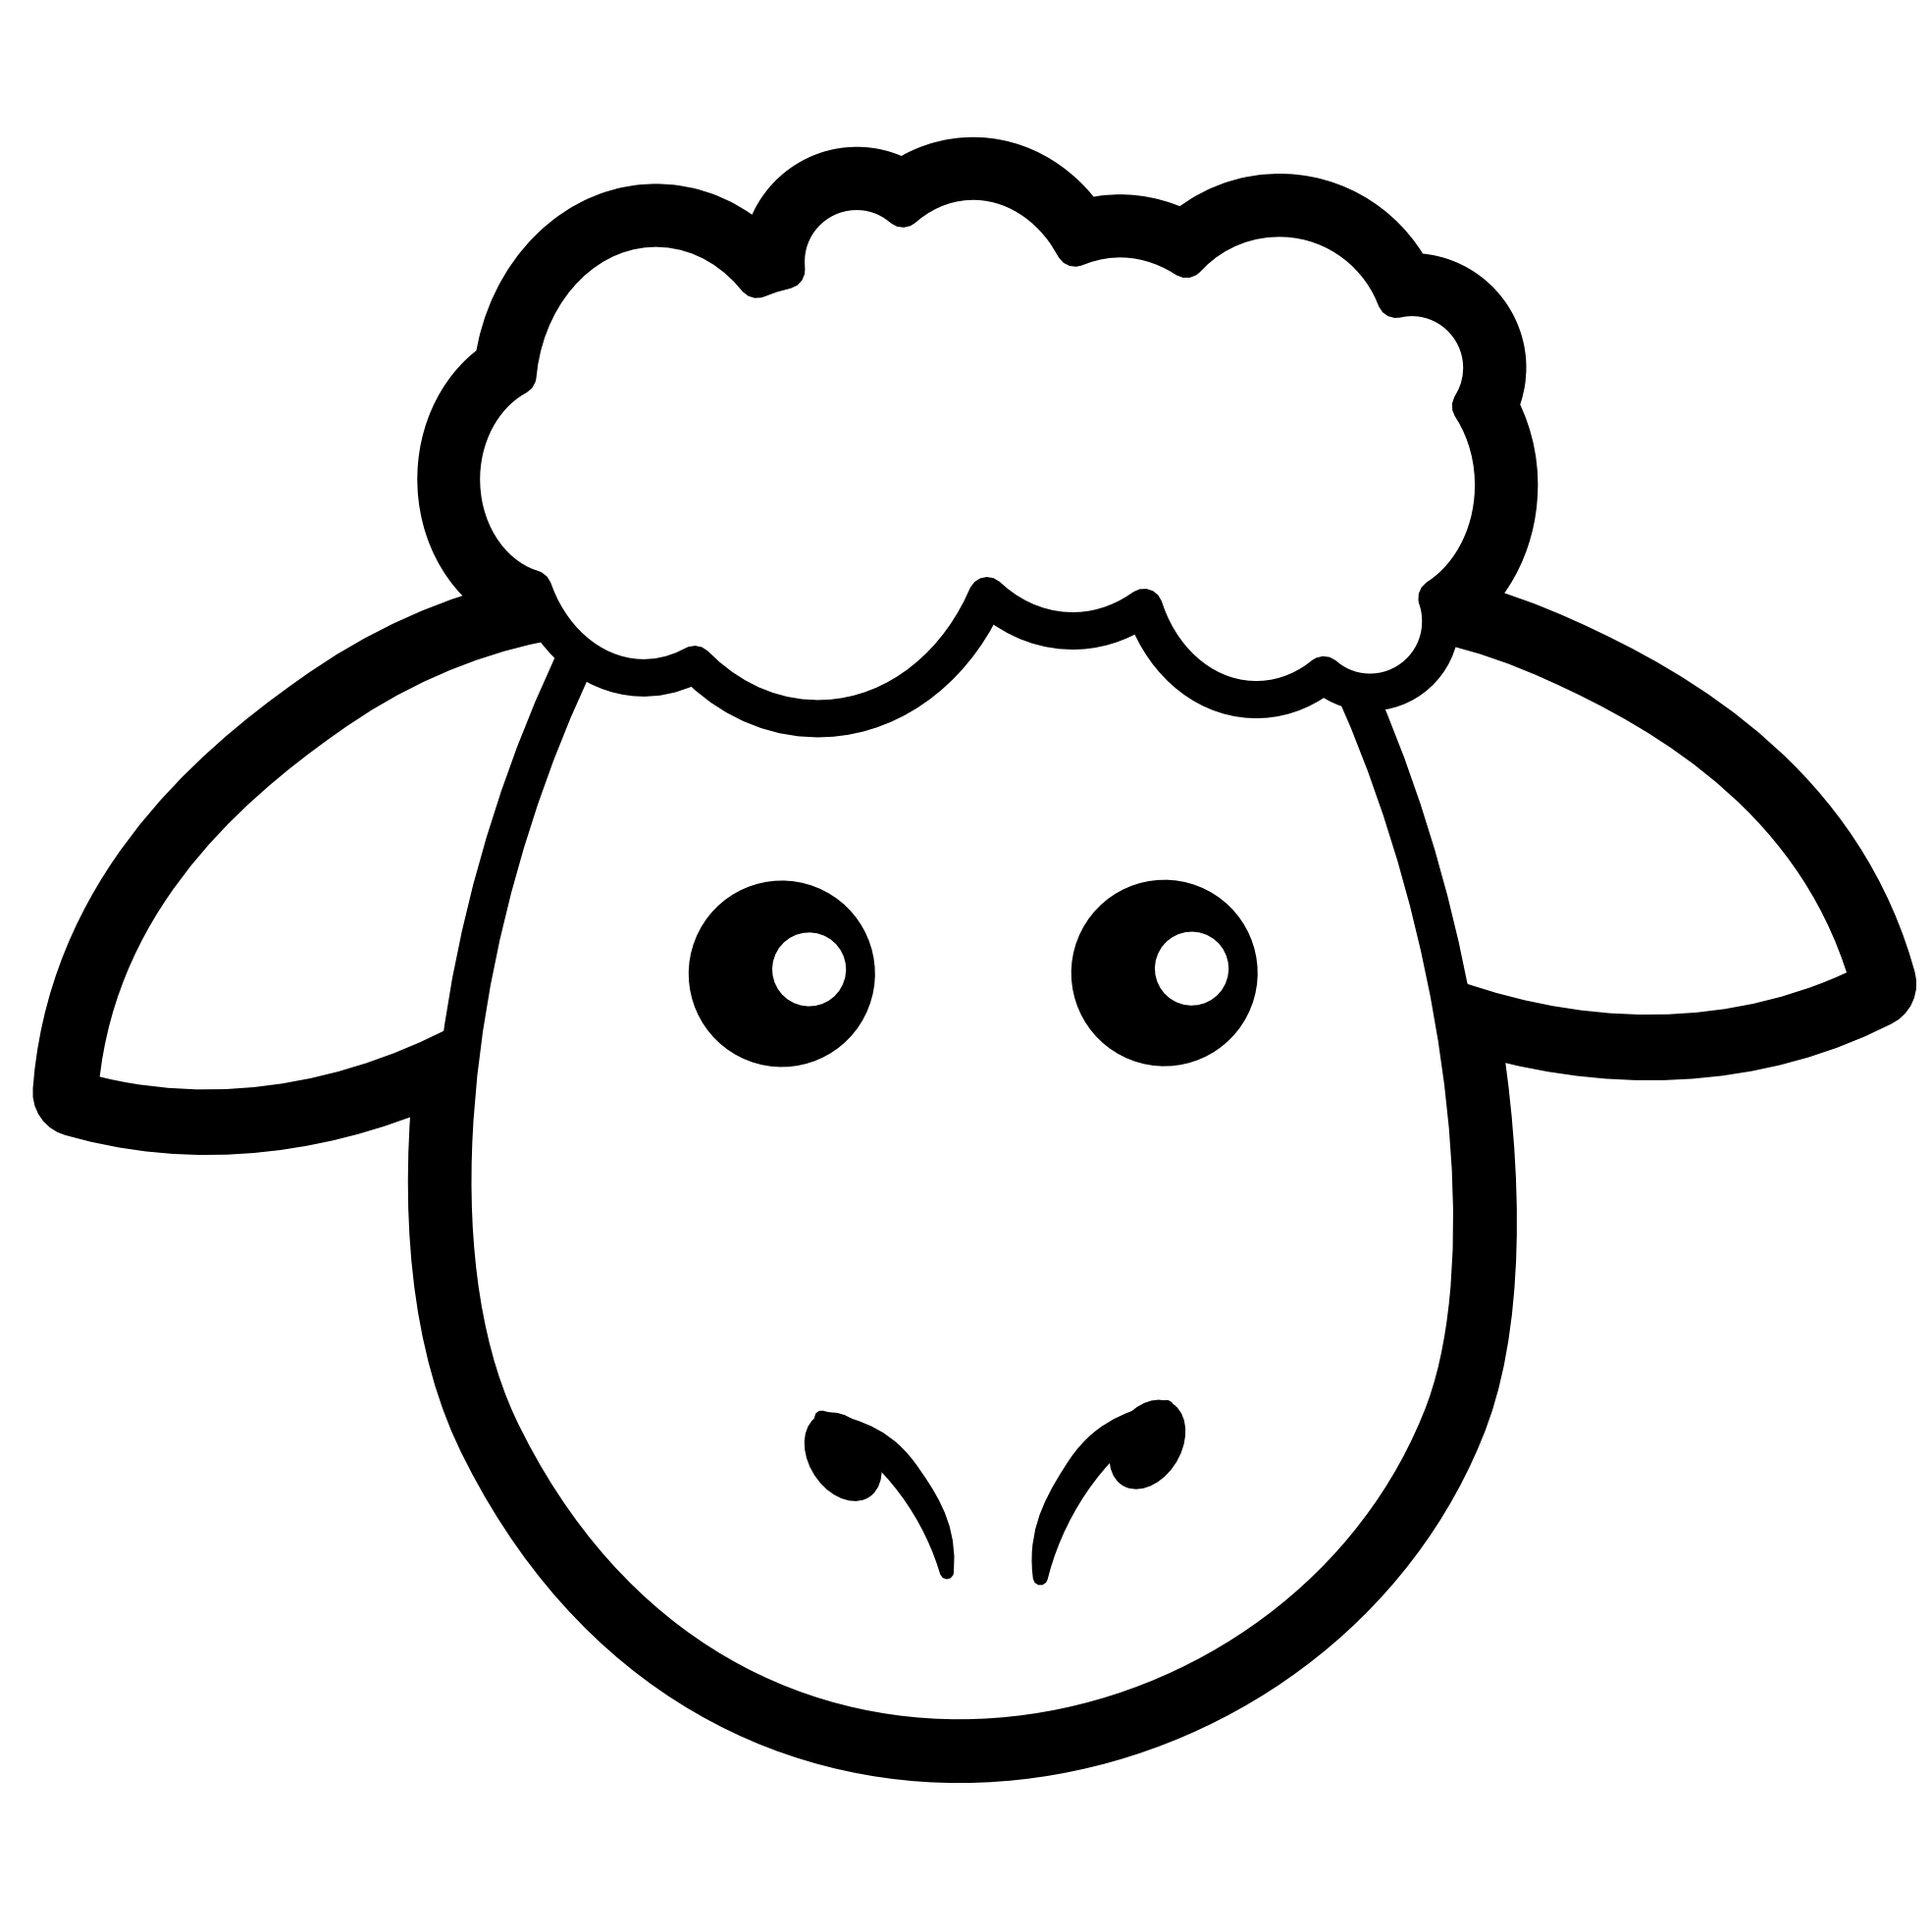 Straight face black and. Lamb clipart primitive